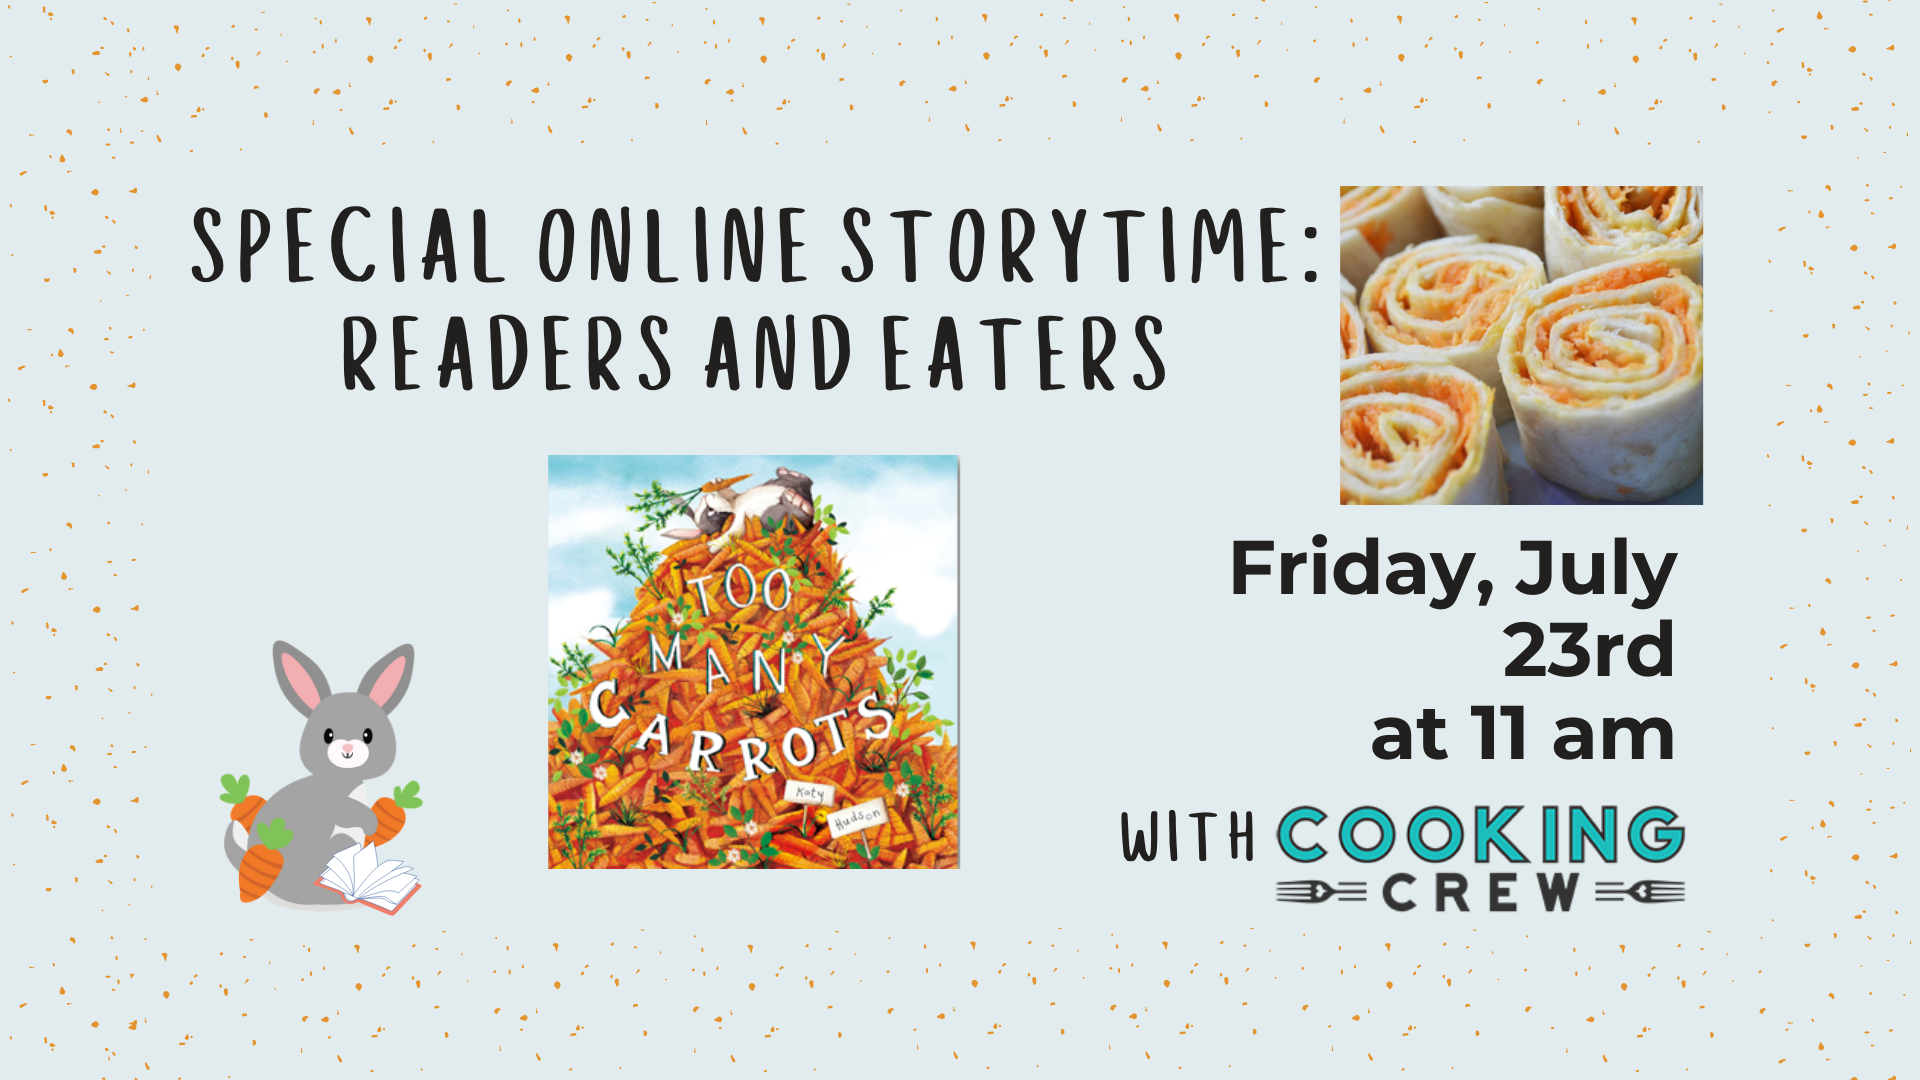 Special Online Storytime - Readers and Eaters